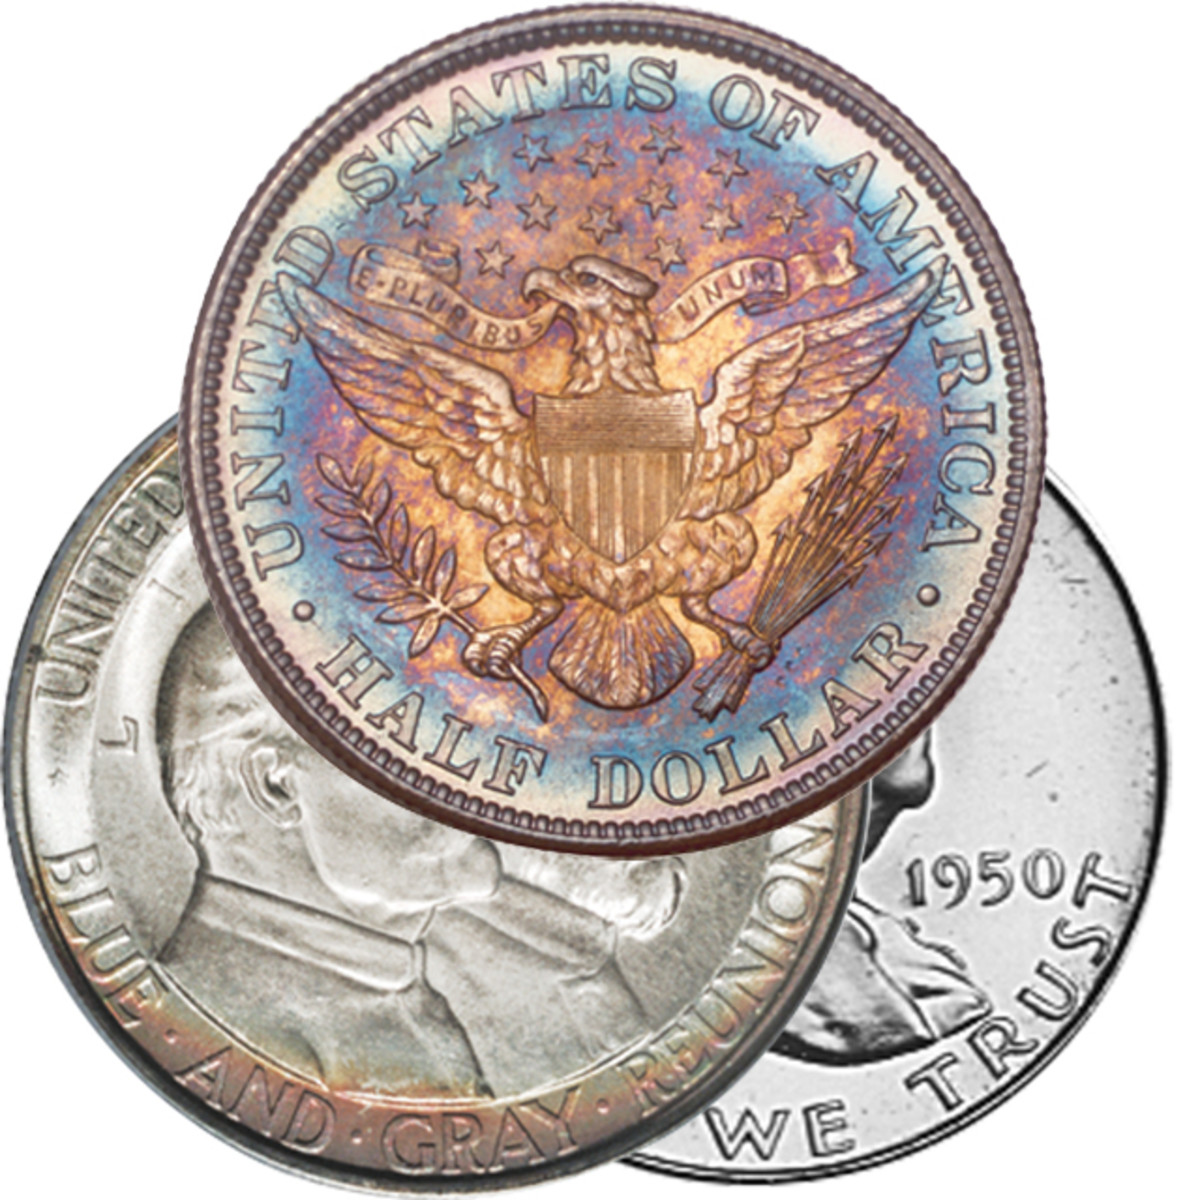 Certain coins, like high grade Barber coinage, Franklin half dollars and classic commemoratives did well at the show.